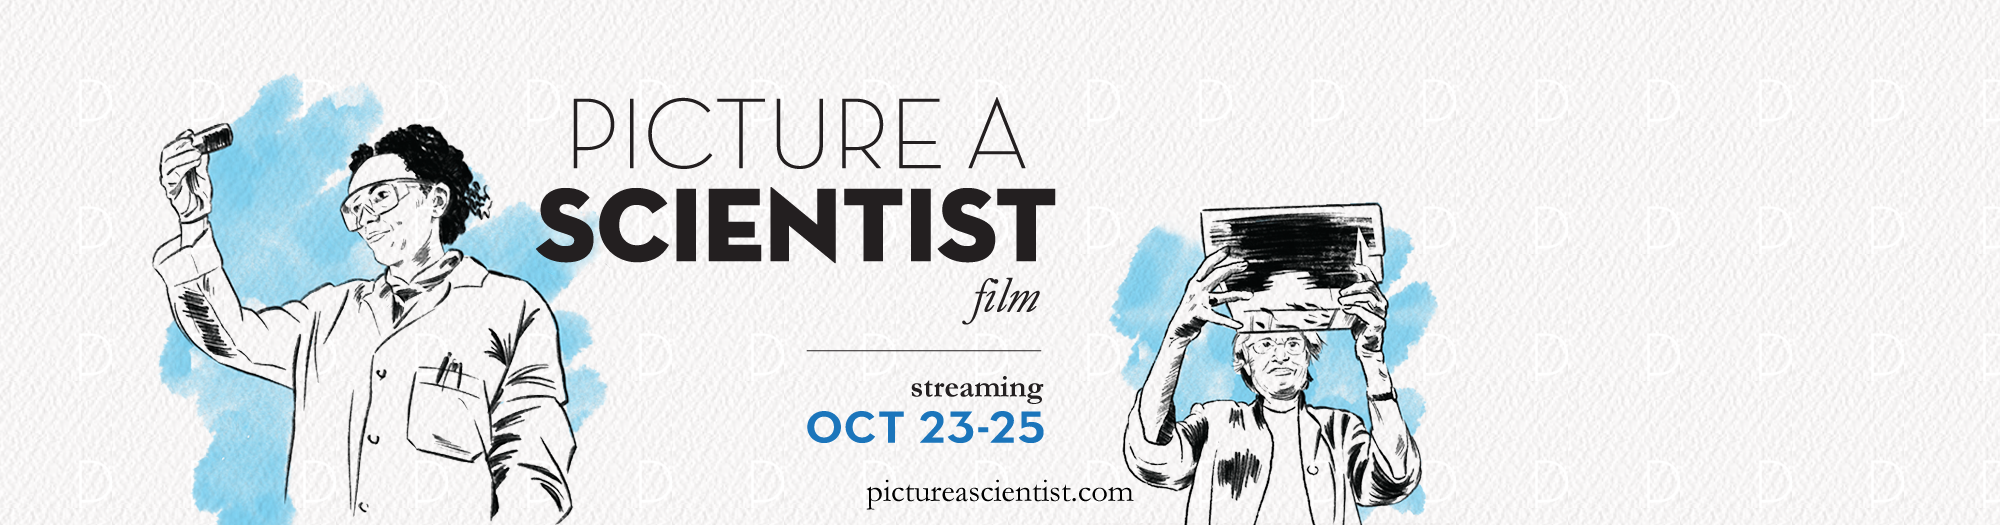 Picture a scientist screening, discussion series